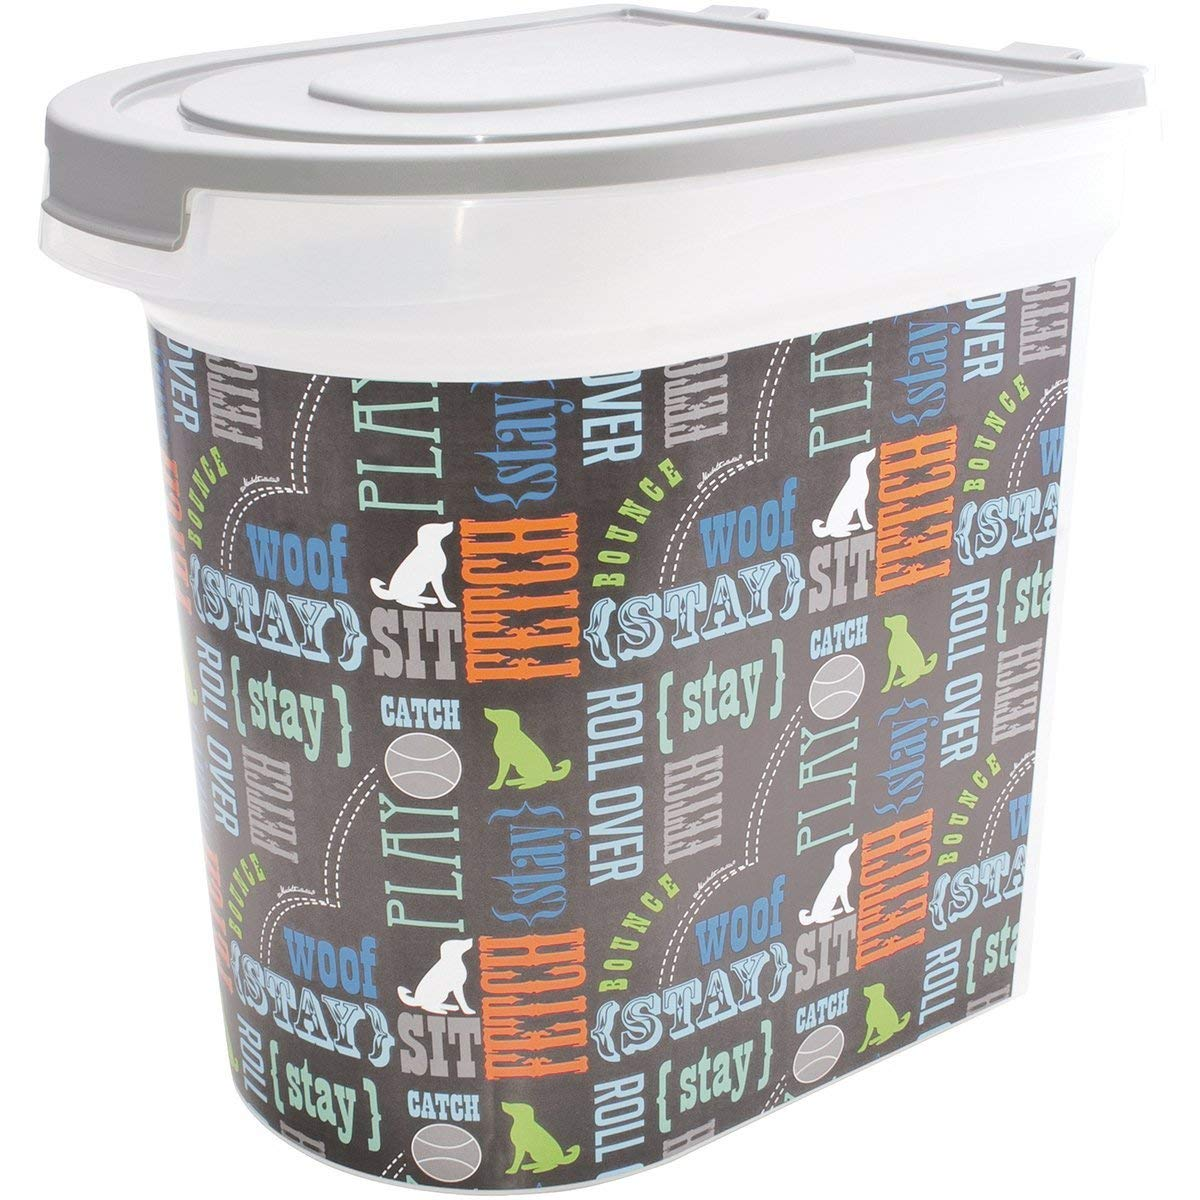 OKSLO 26 pound pet food storage container, word design, includes 1 cup measured scoop,